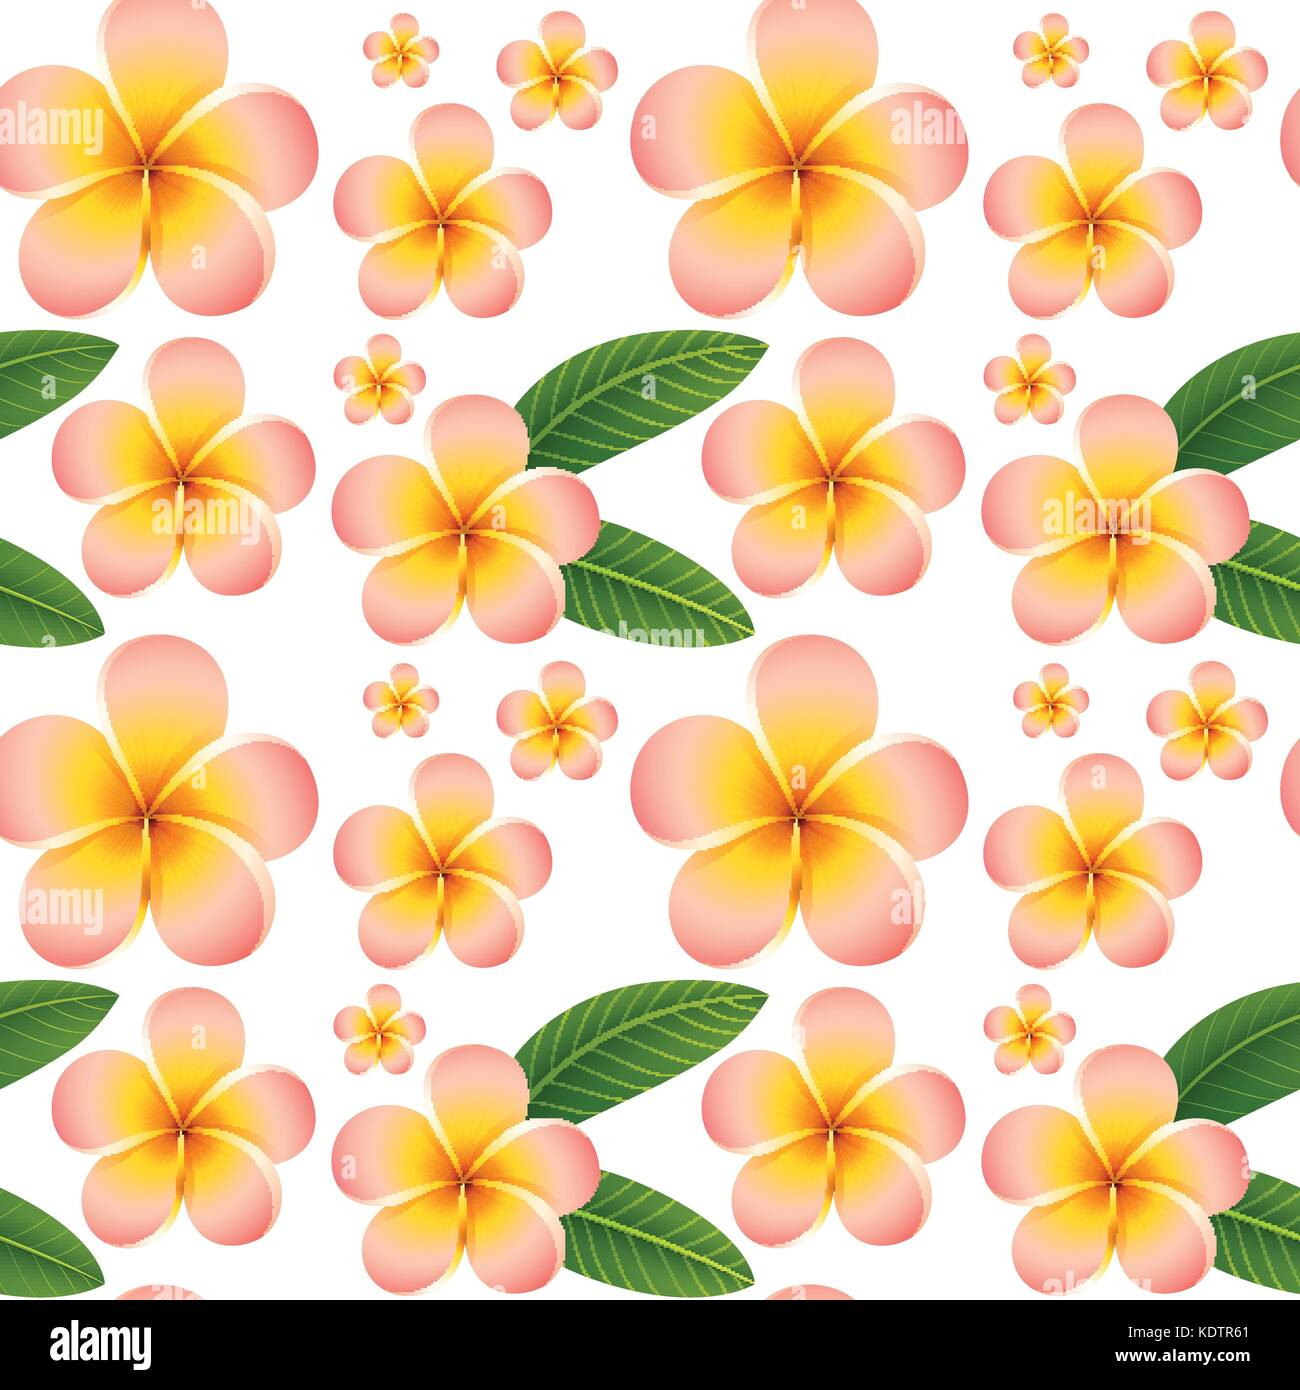 Seamless Background With Pink Plumeria Flowers Illustration Stock